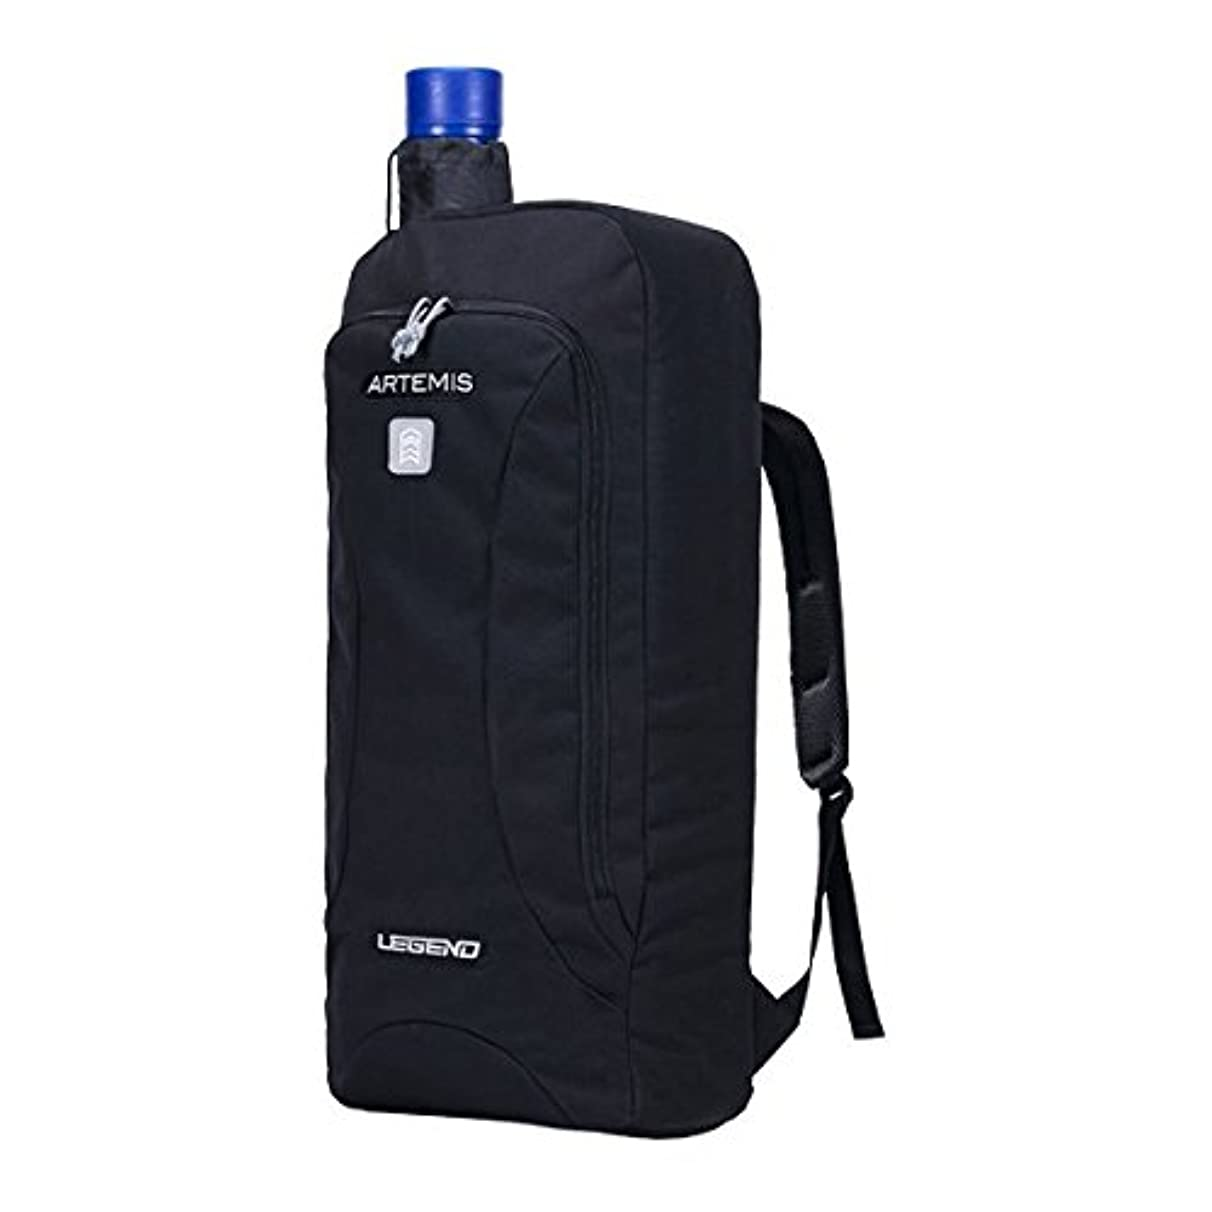 """Legend Archery Recurve Backpack Bag Artemis for Recurve Bow up to 27"""" – Telescopic Arrow Tube Included – Ideal for Beginners and Seasoned Archers."""